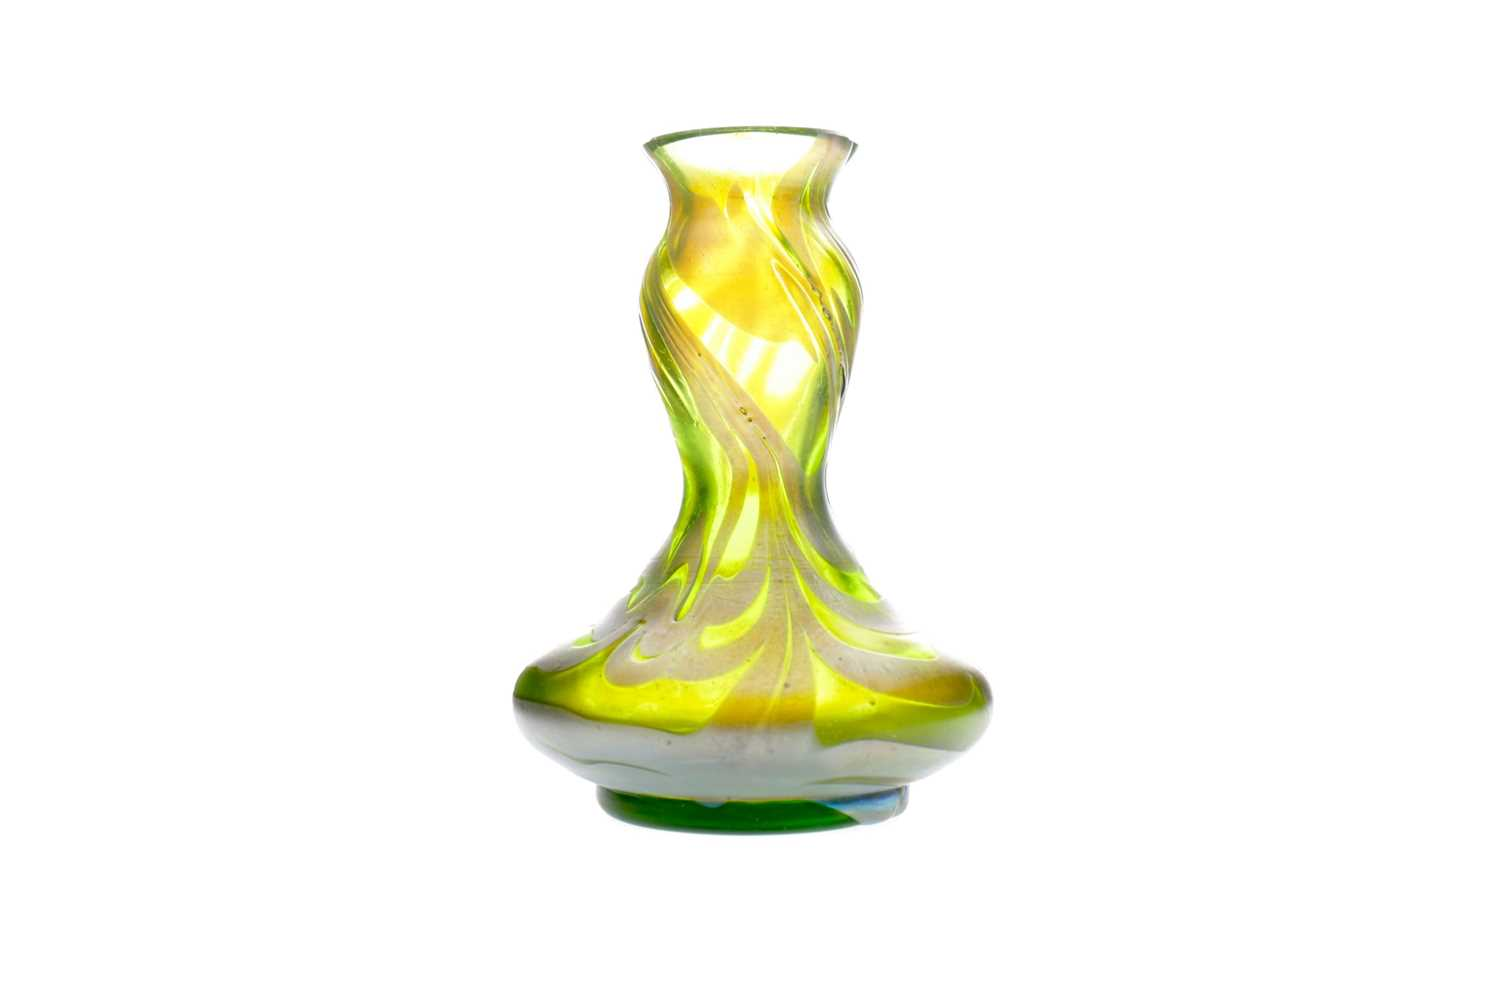 Lot 1071 - AN ART NOUVEAU IRIDESCENT GLASS VASE